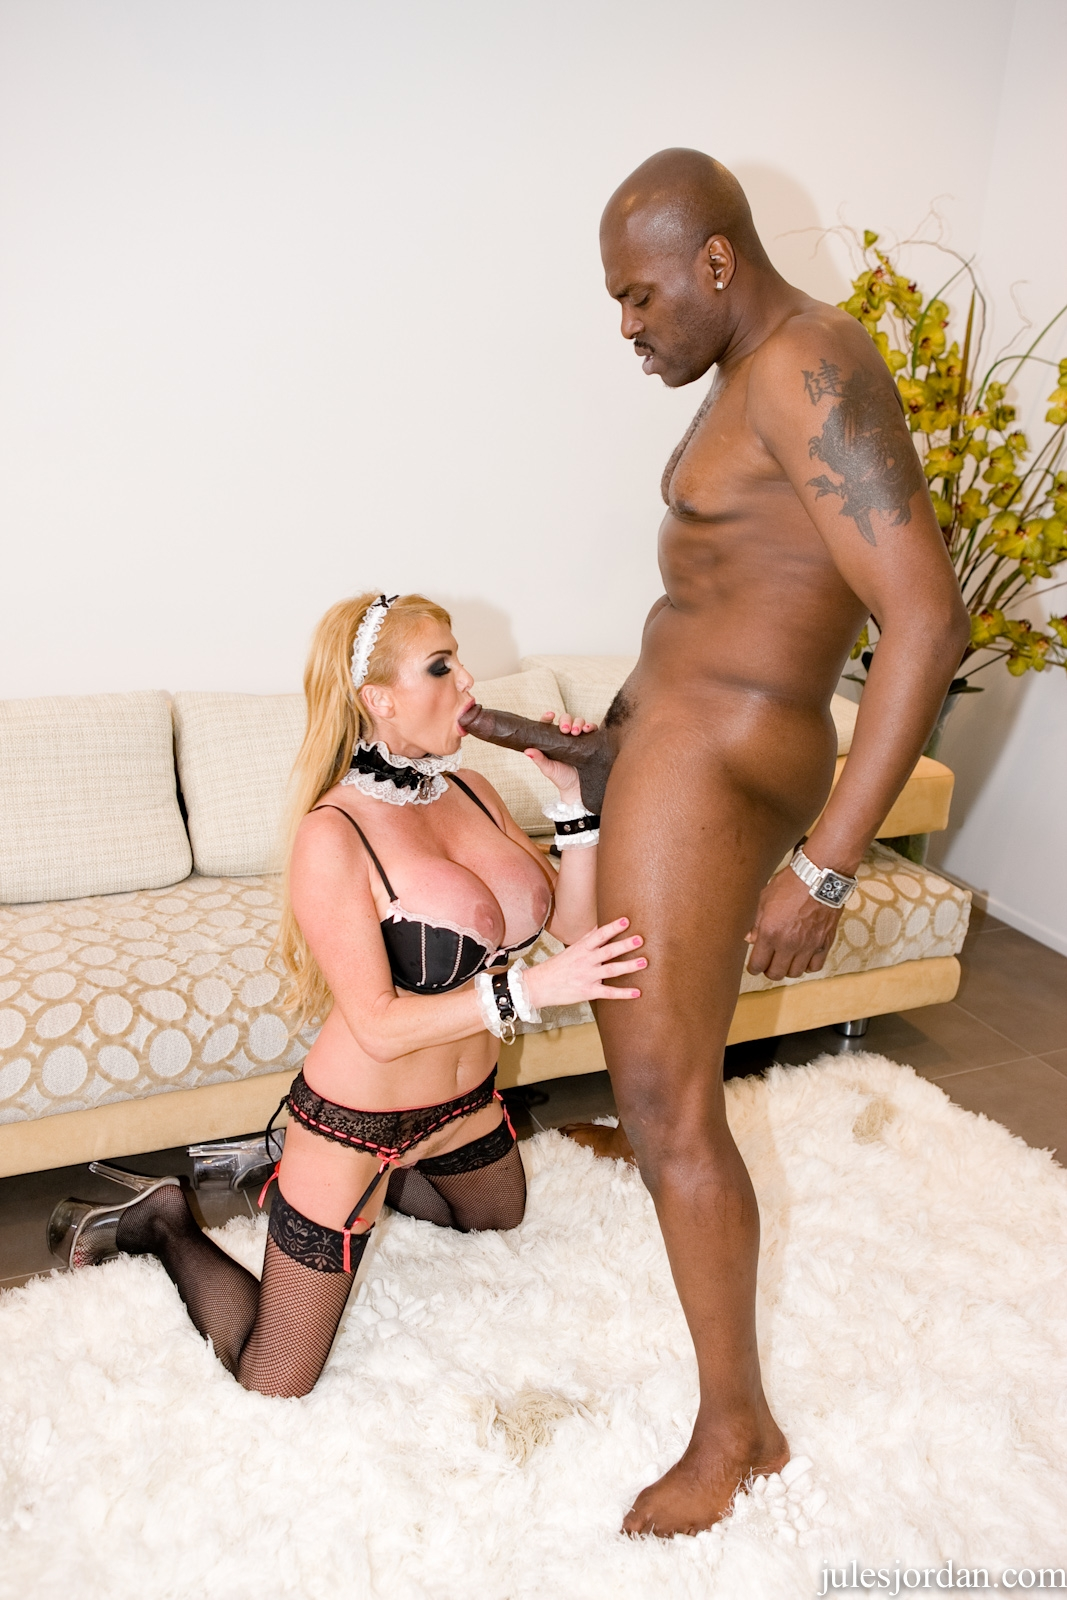 Jules Jordan 'Interracial Anal' starring Taylor Wane (Photo 16)